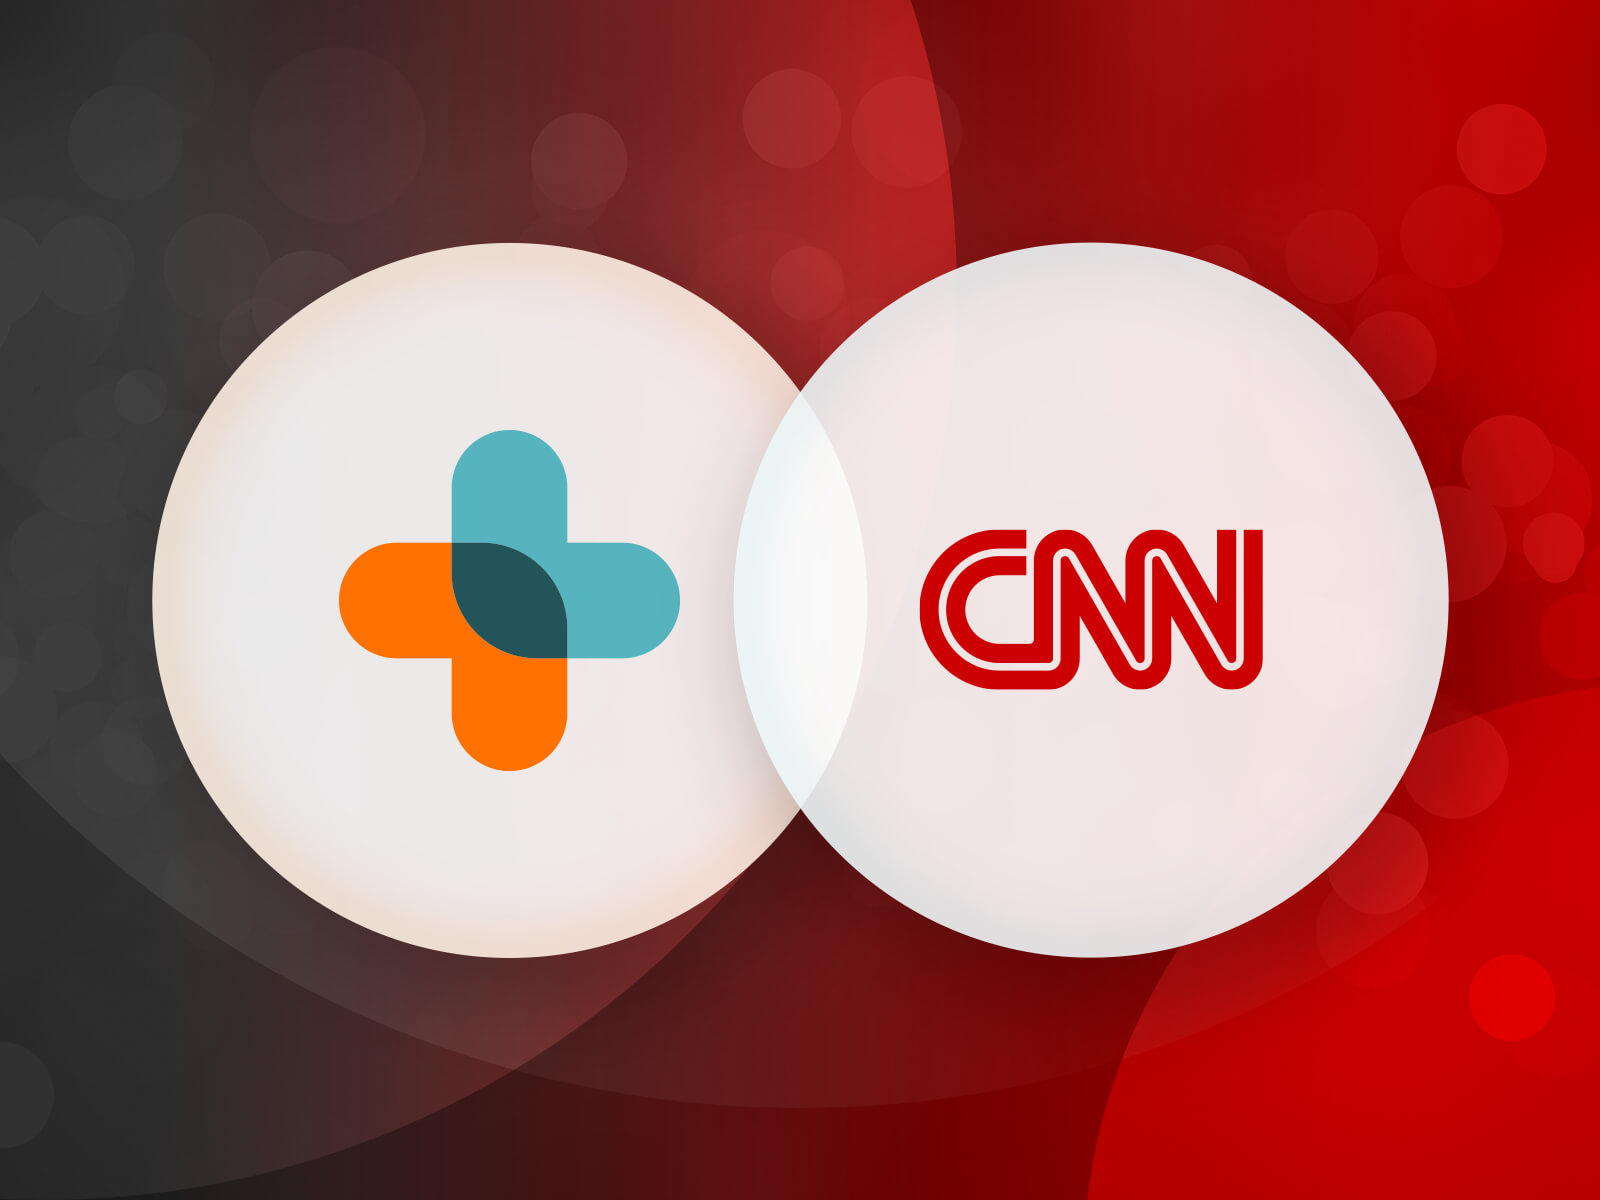 InfoSum collaborates with CNN to complement first-party ecosystem